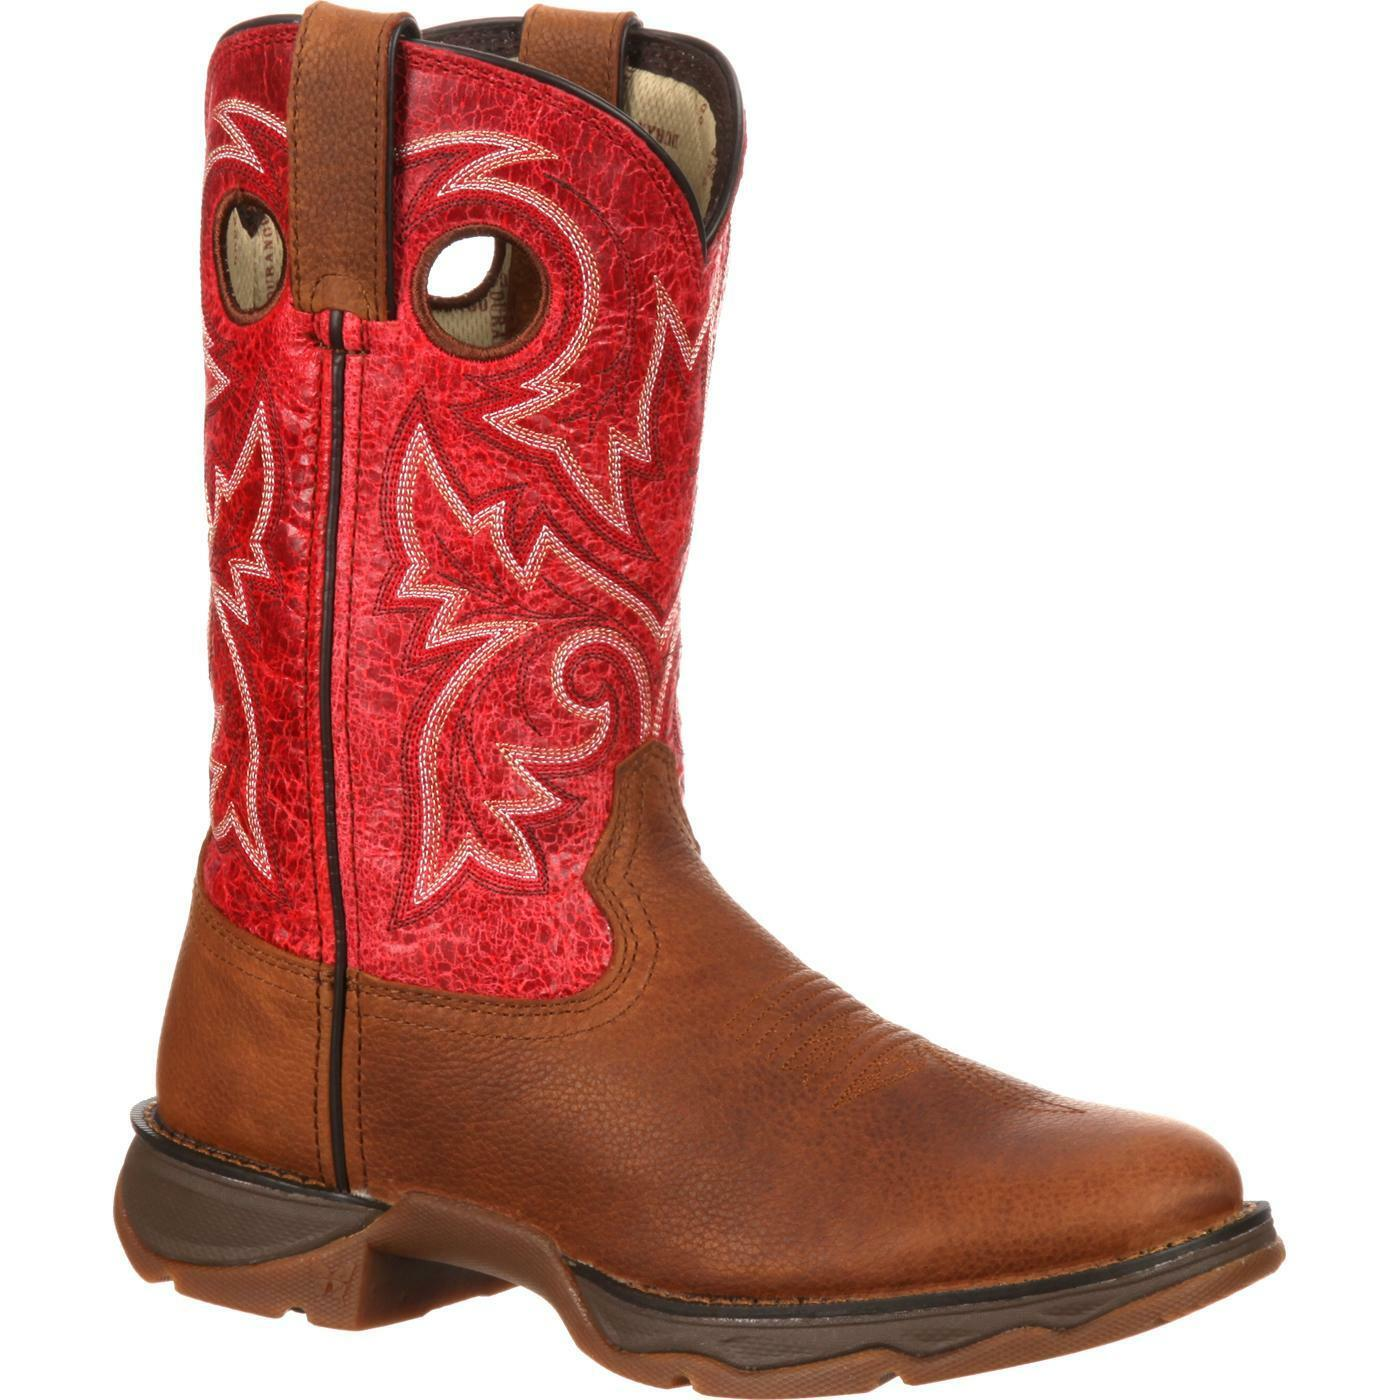 WOMEN'S DURANGO RED BAR NONE WESTERN BOOTS DWRD018